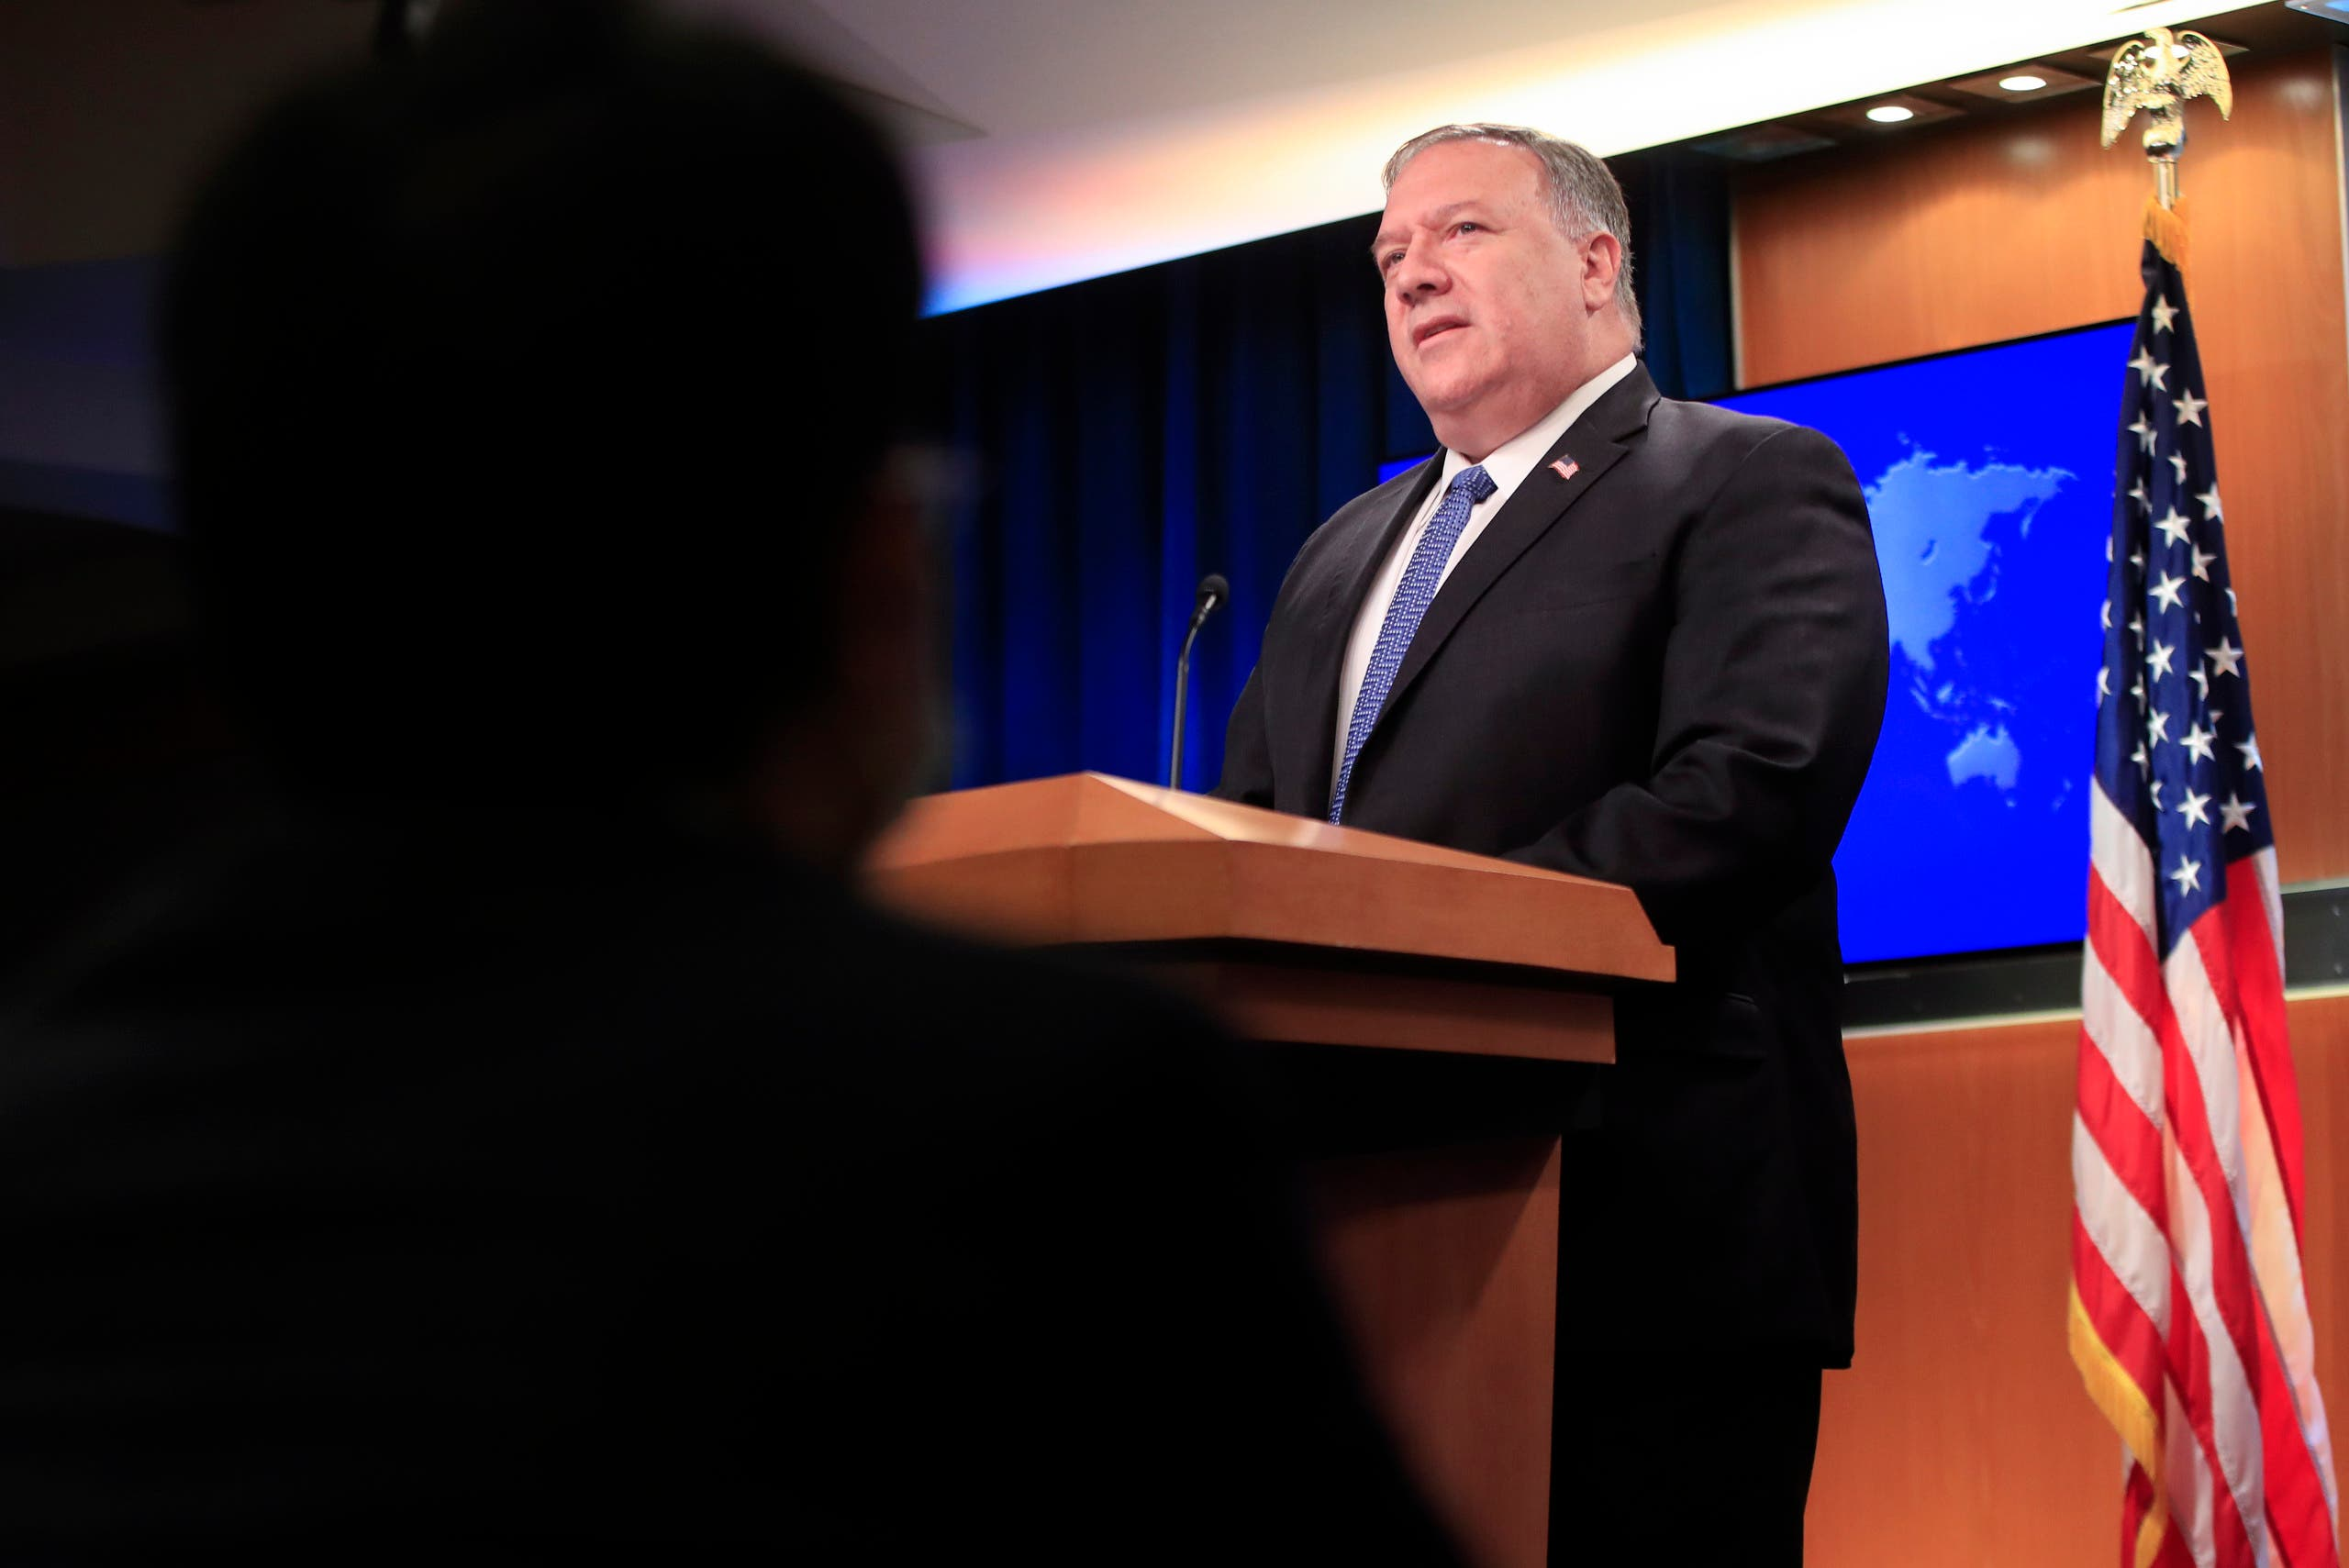 US Secretary of State Mike Pompeo speaks during a news conference at the State Department in Washington, DC, on August 5, 2020. Pompeo said Wednesday the US would offer a $10 million reward to arrest any state actor who interferes in the November elections.